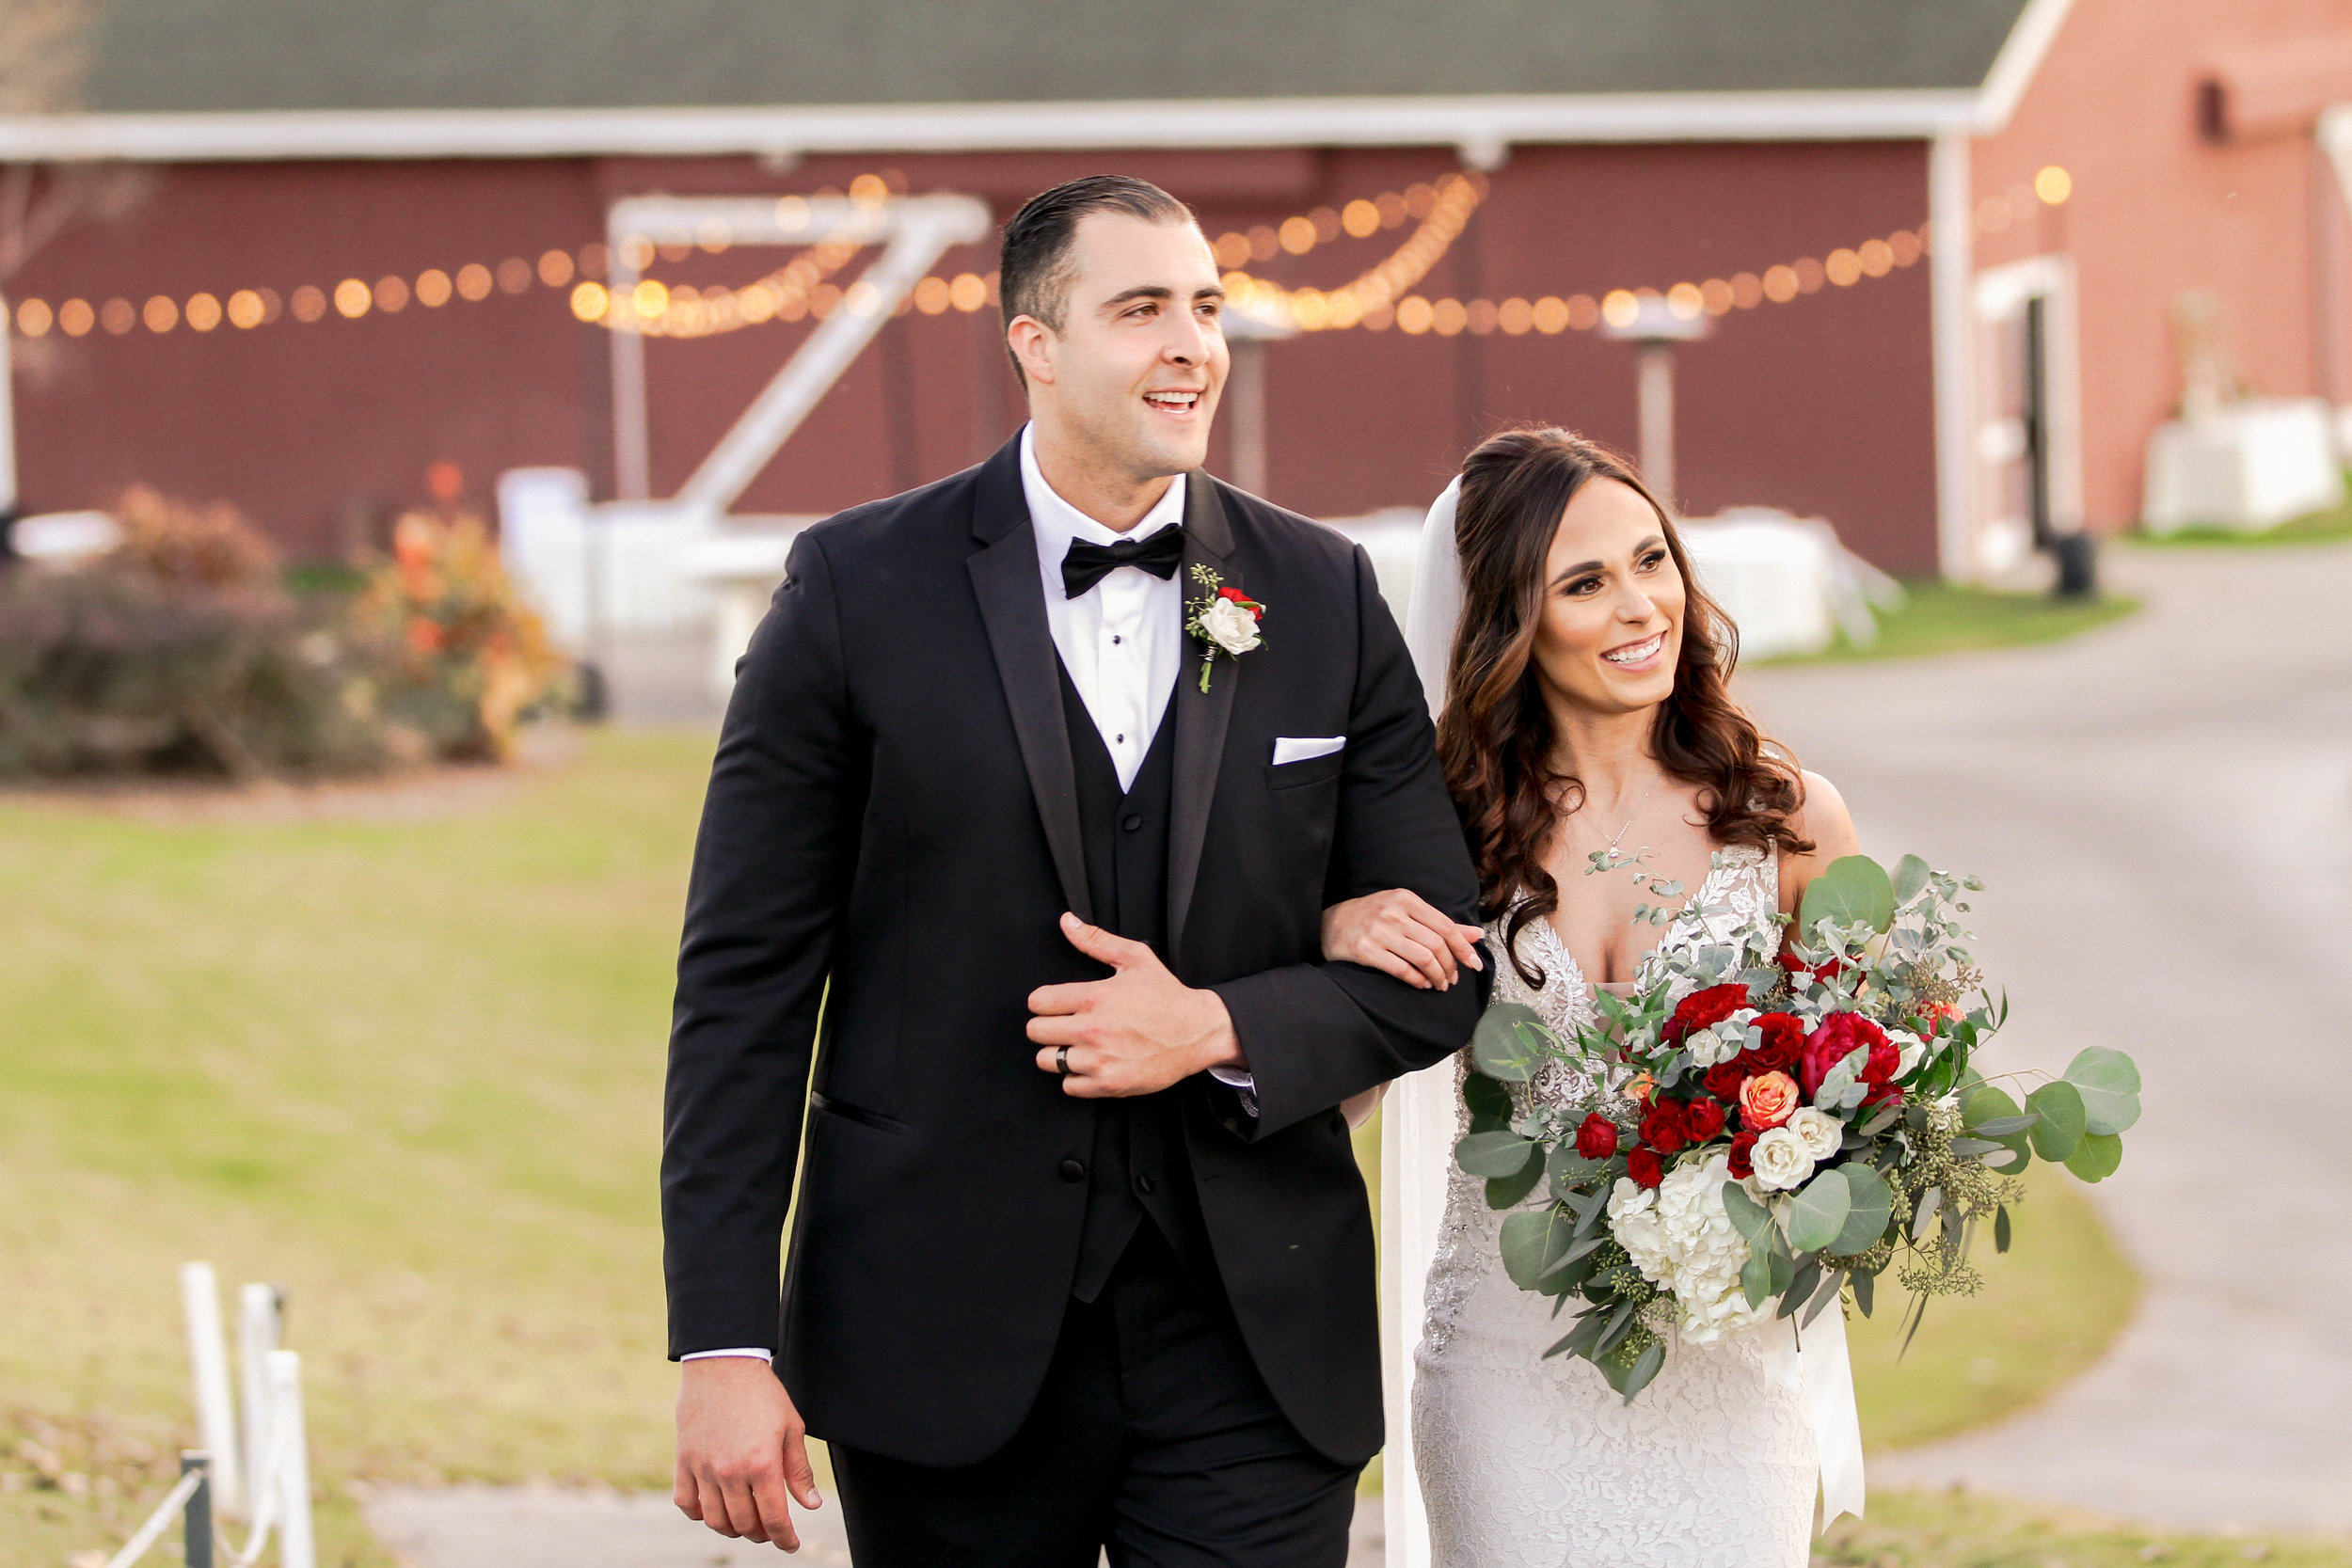 Sam and Sarah - Click here to see their wedding at Strawberry Farms with Juliet Peel Photography